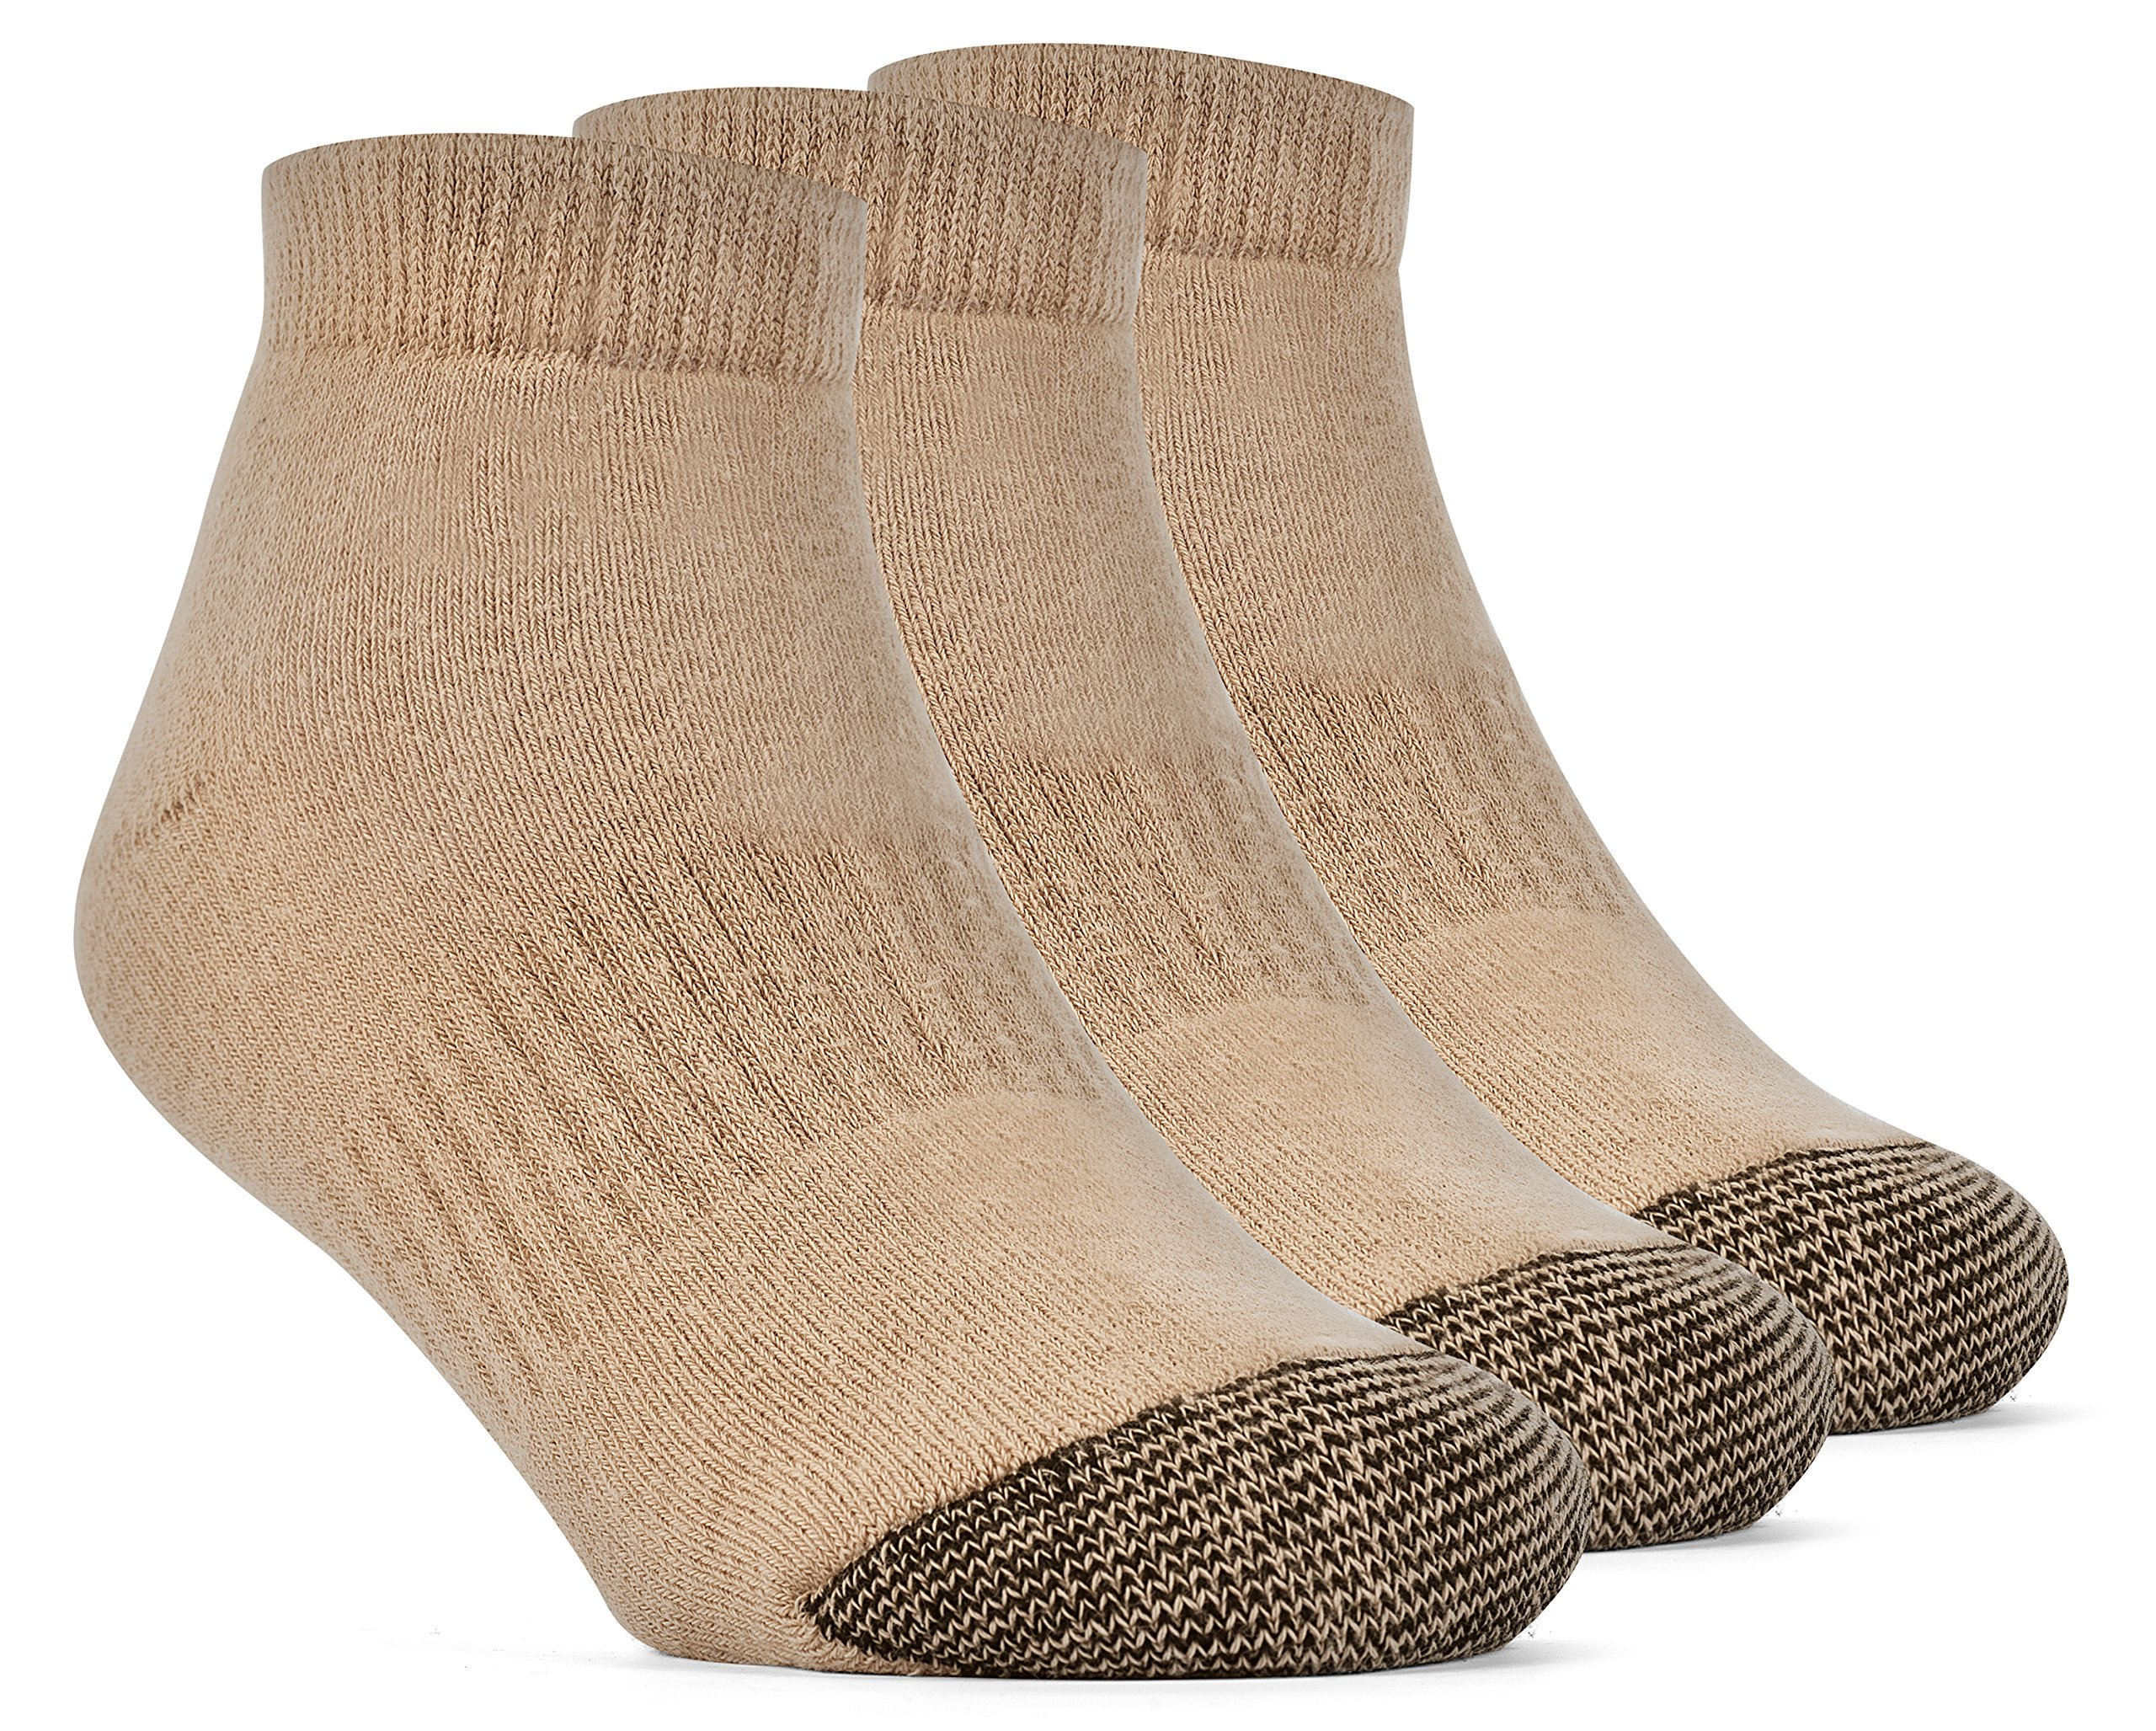 YolBer Boys' Cotton Super Soft Low Cut Cushion Socks - 3 Pairs, Small, Nude Beige by YolBer